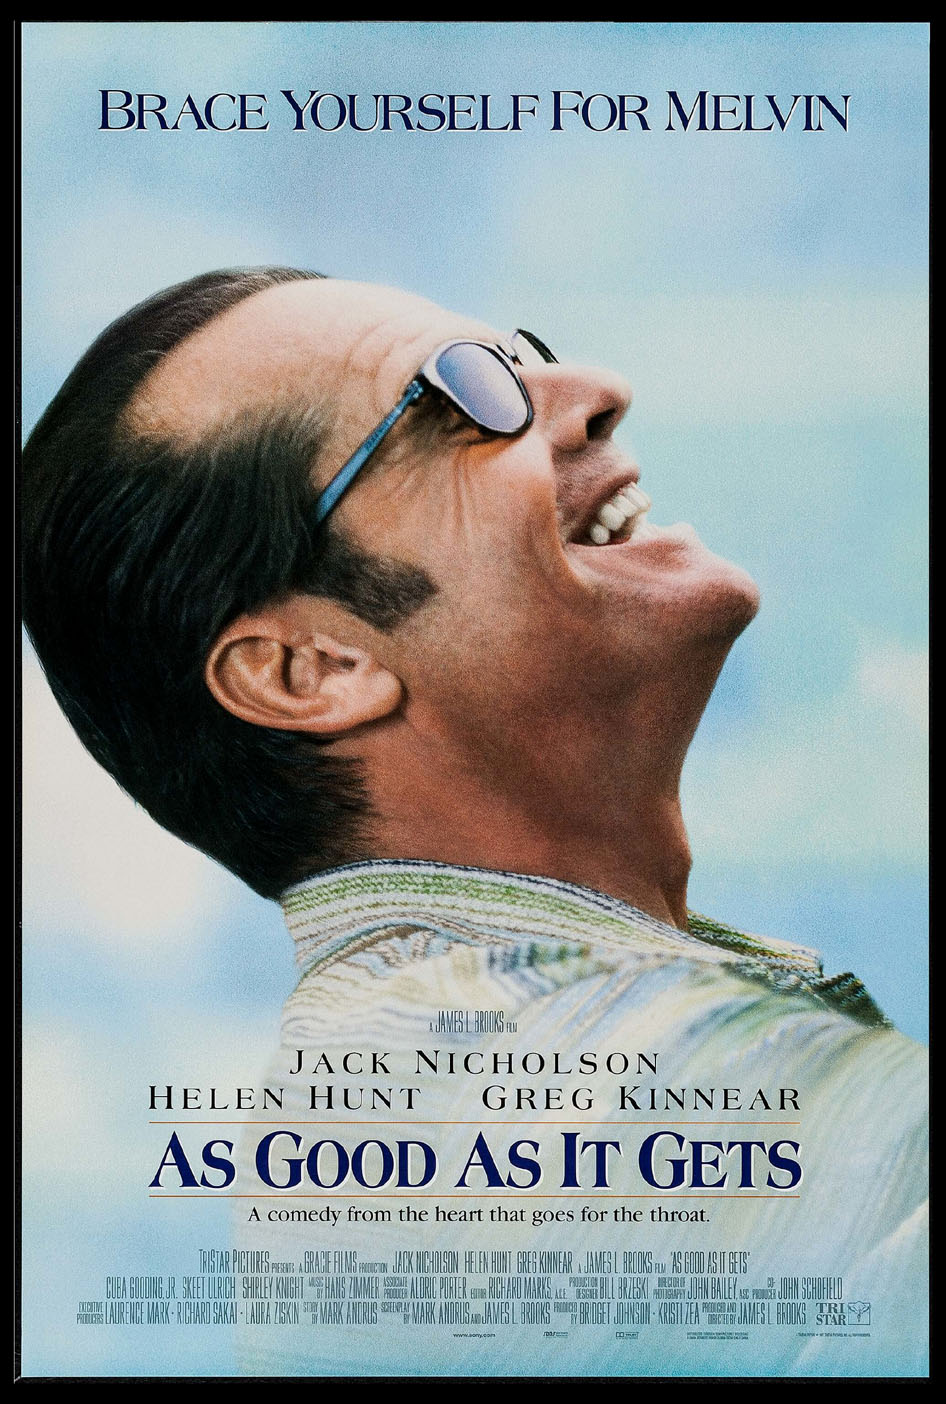 AS GOOD AS IT GETS @ FilmPosters.com